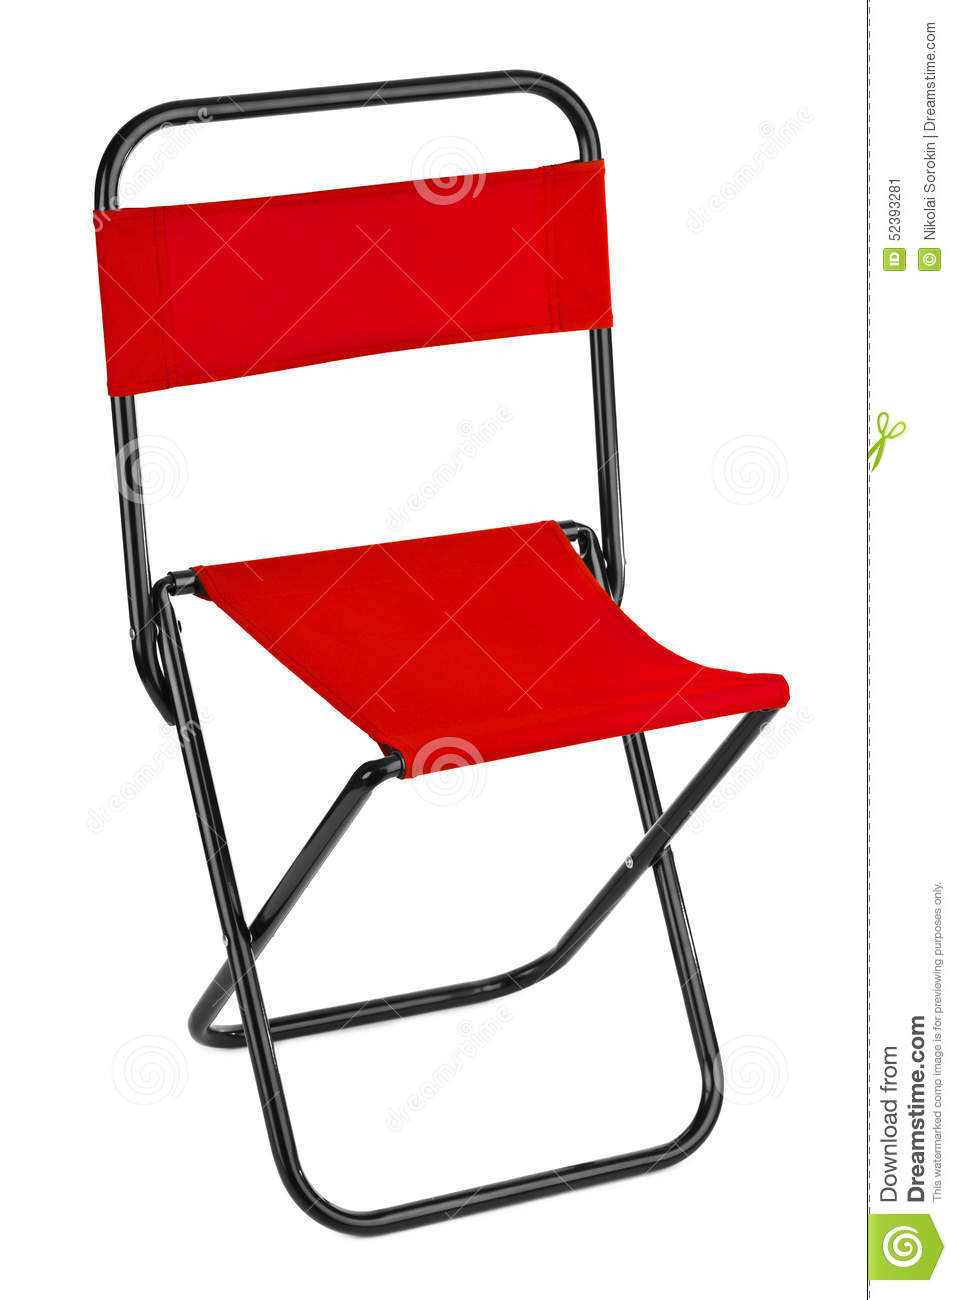 Download Chaise Pliante Rouge Image Stock Du Pliage Fondamental